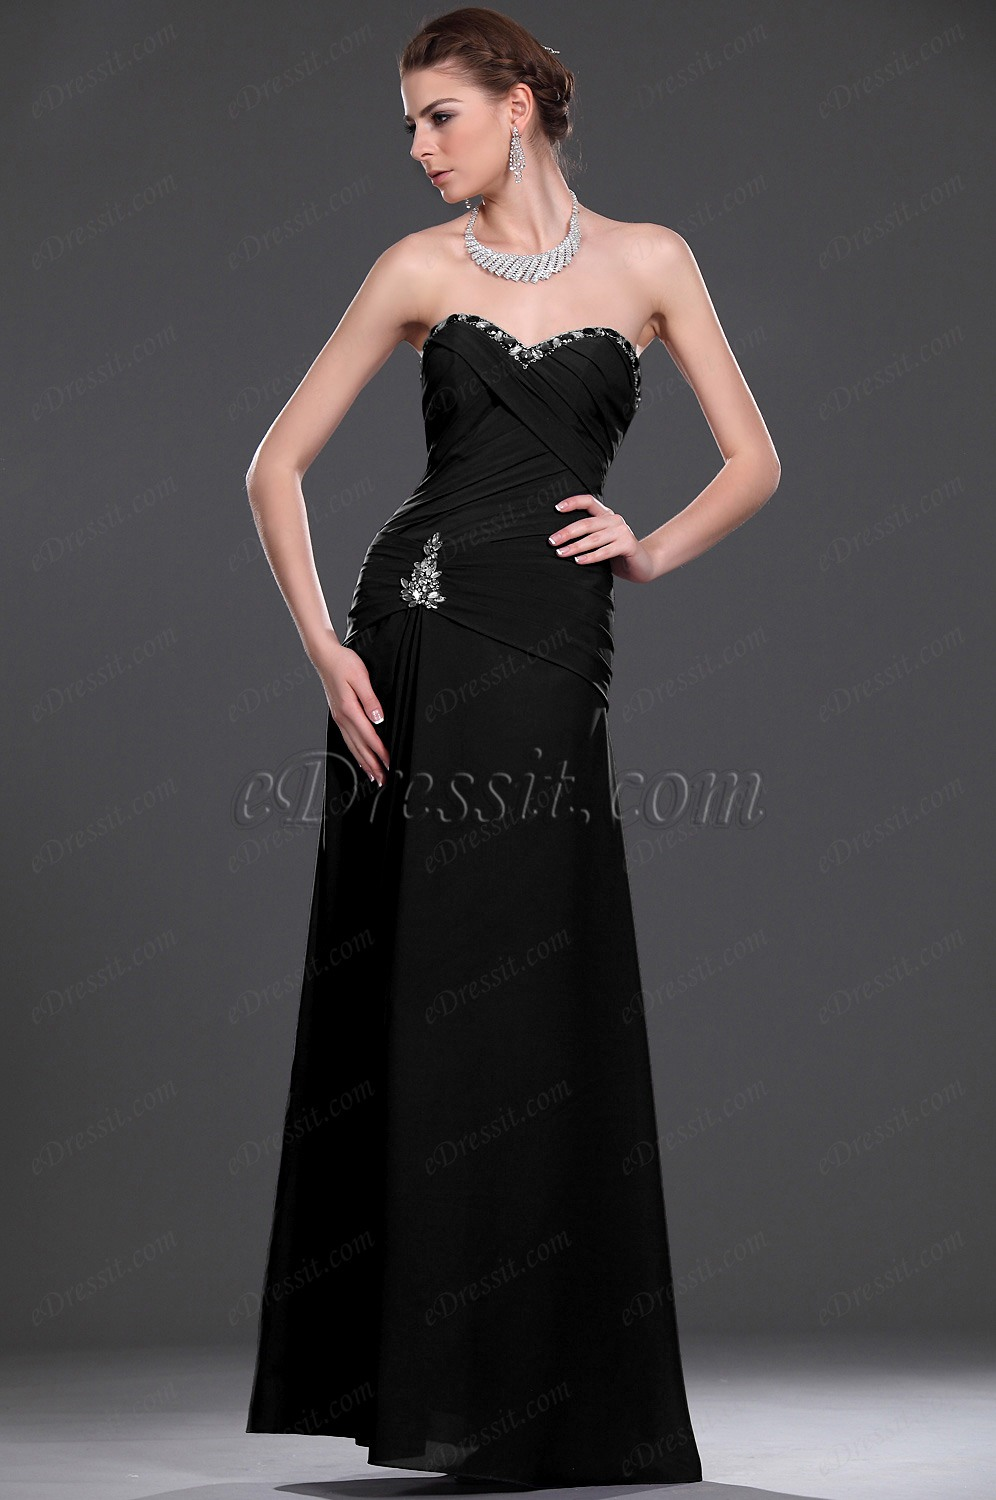 Clearance Sale !eDressit Black Mother of the Bride Dress (26114506B)